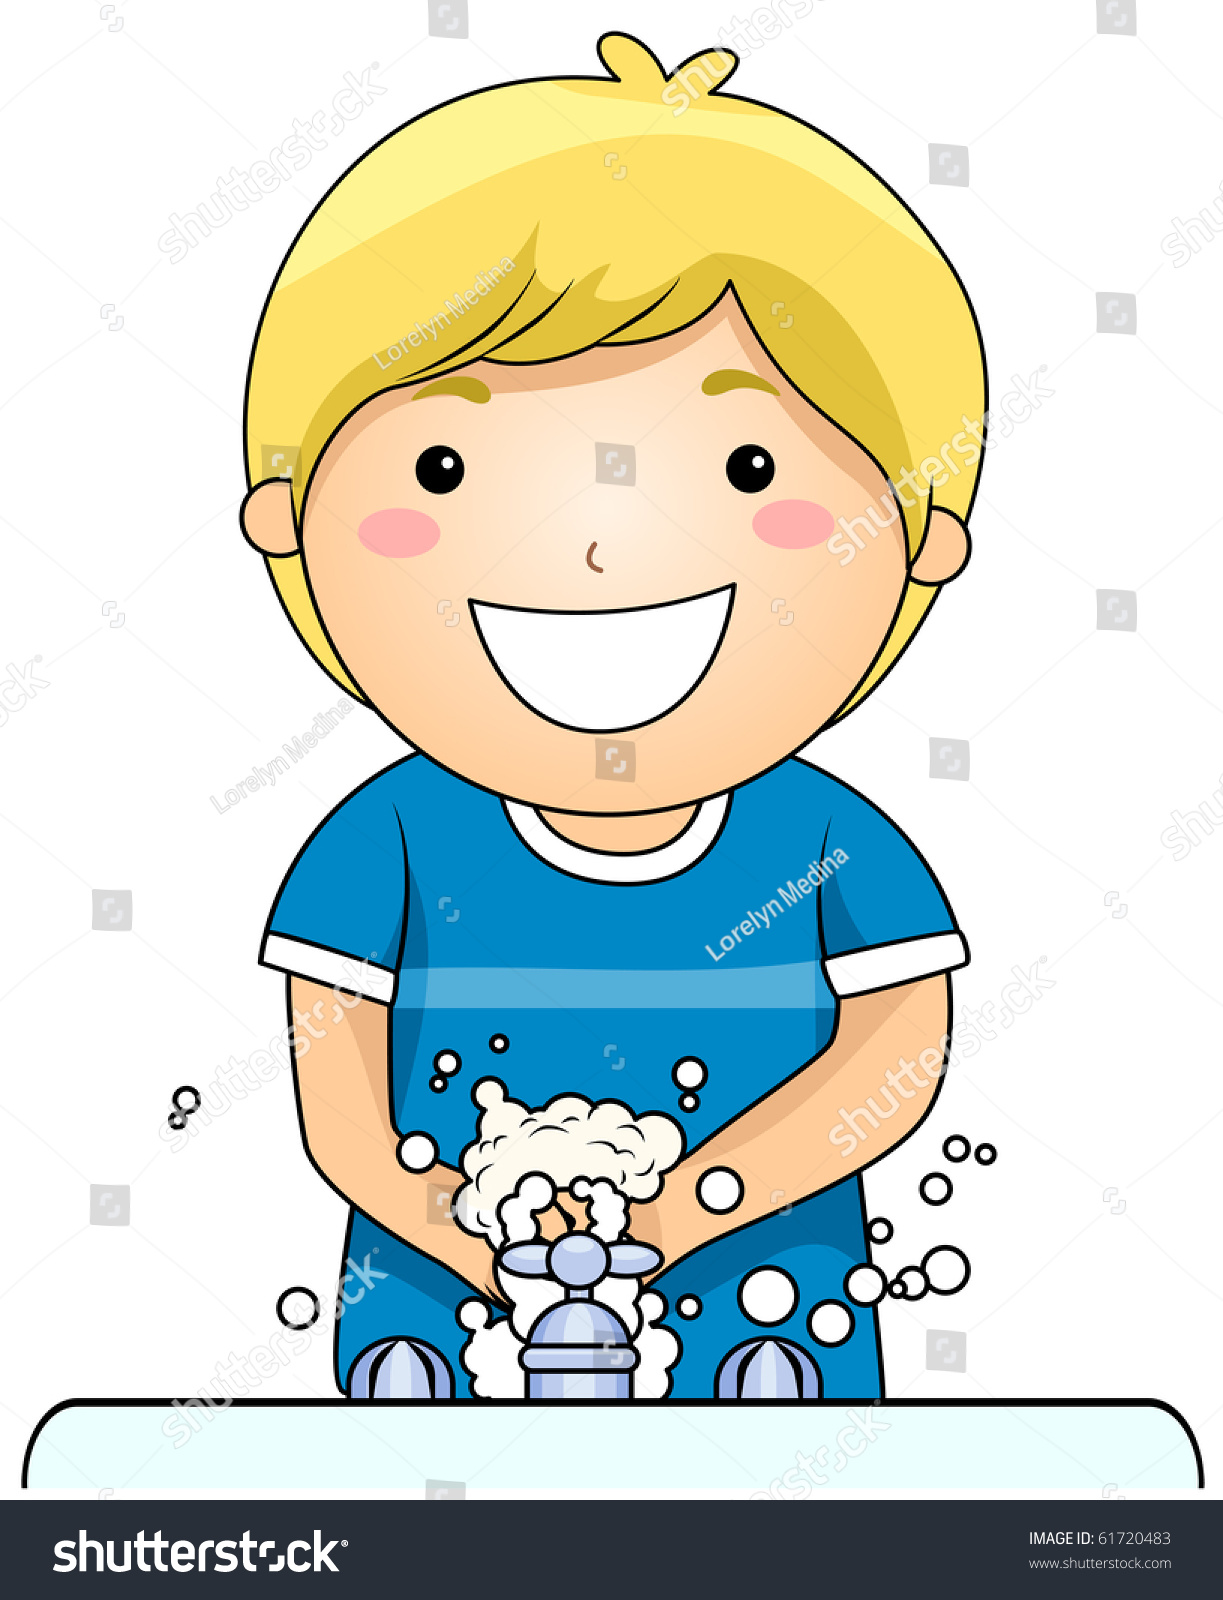 young boy washing his hands vector stock vector 2018 61720483 rh shutterstock com cleaning hands clipart washing hands clipart black and white